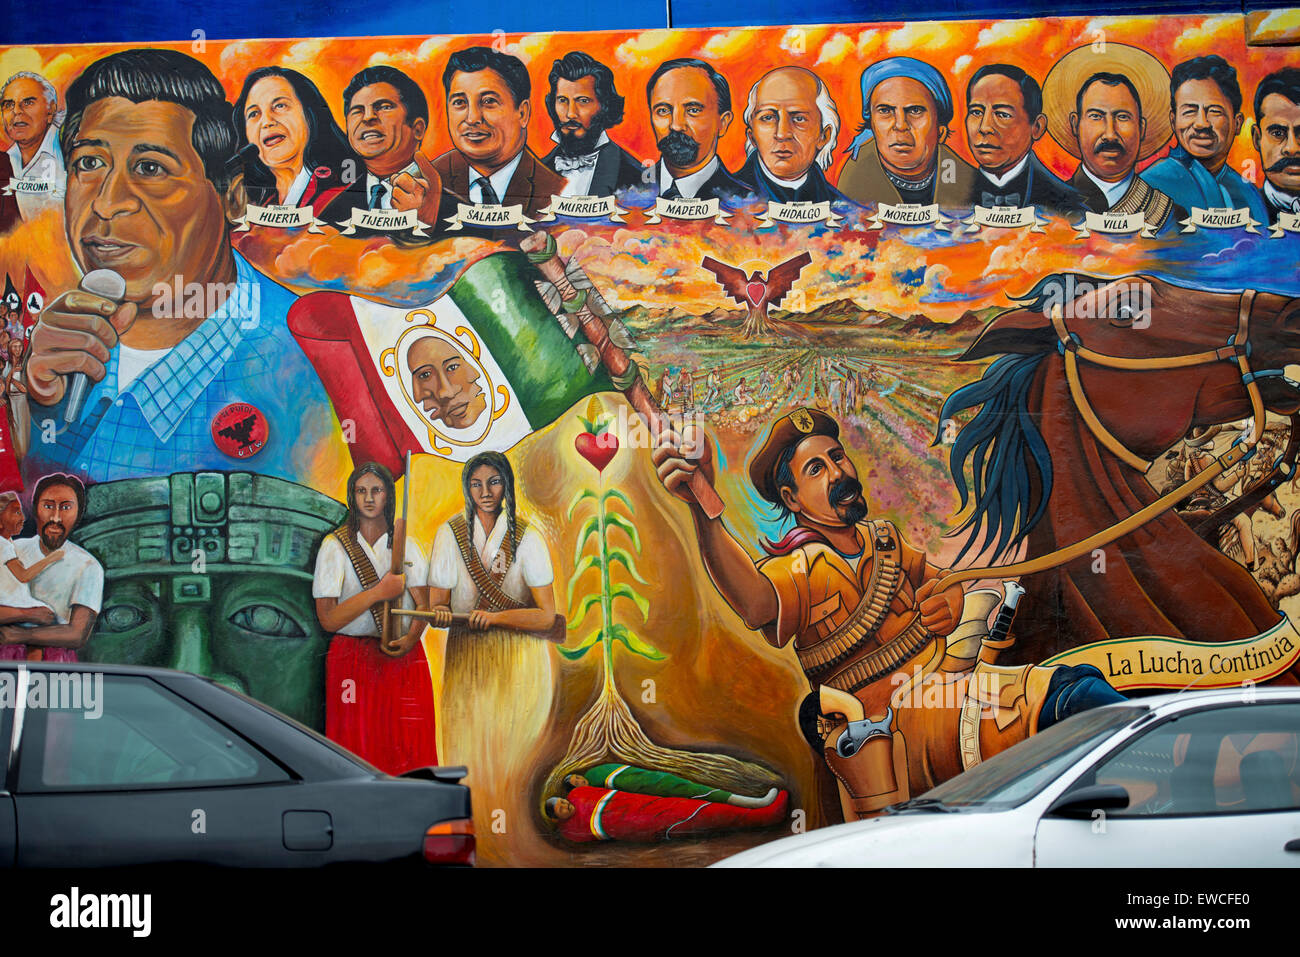 Arte Chicano Murals Chicano Art Stock Photos Chicano Art Stock Images Alamy